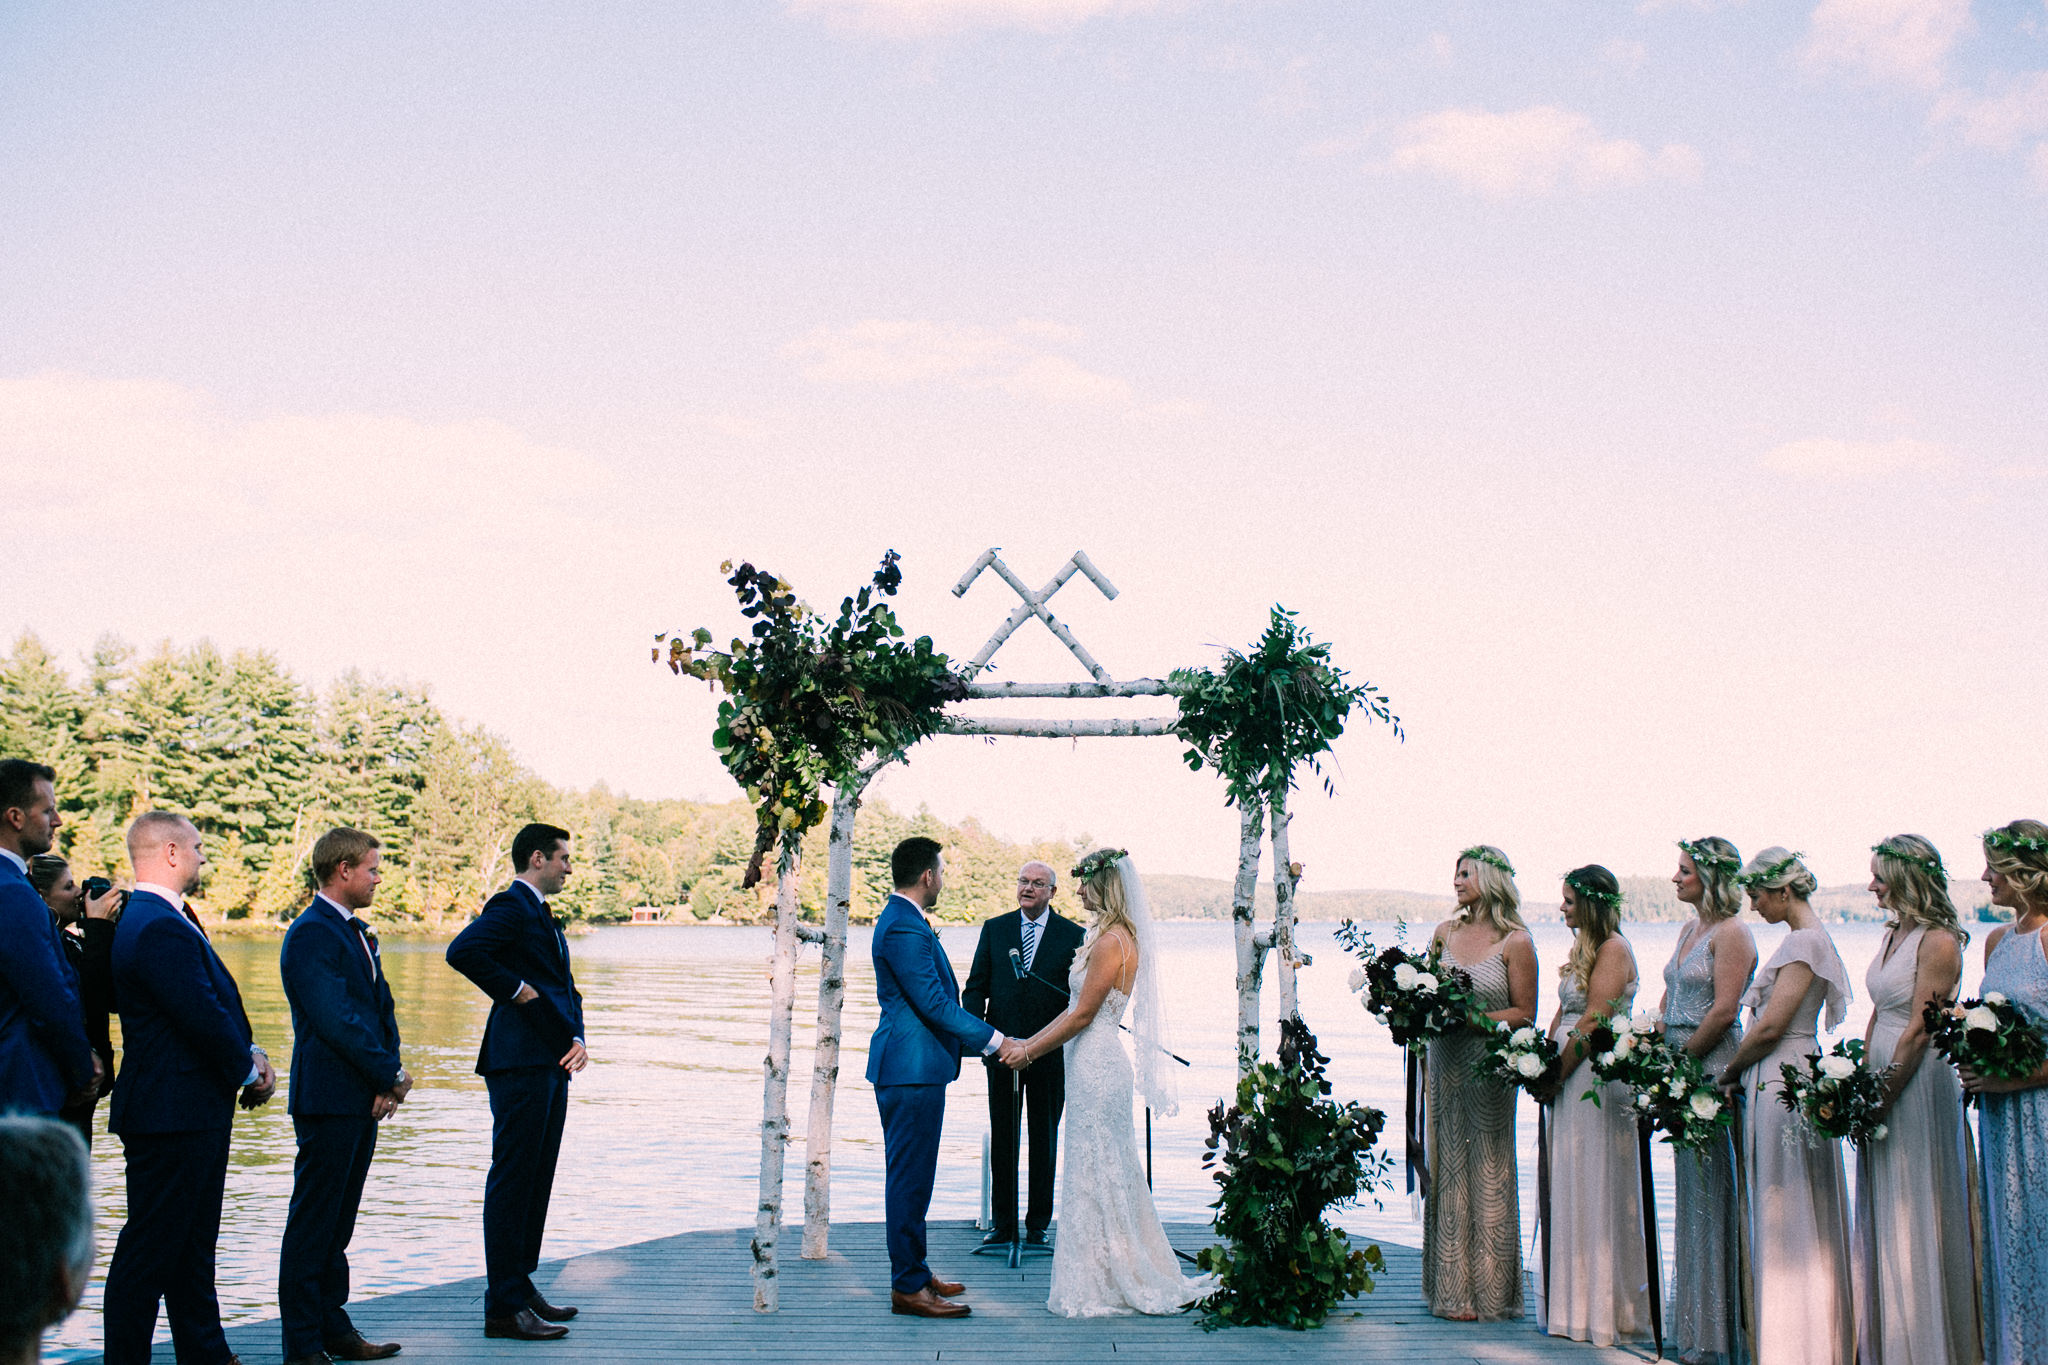 Muskoka lakeside wedding at Port Cunnington Lodge by Max Wong Photo (47)